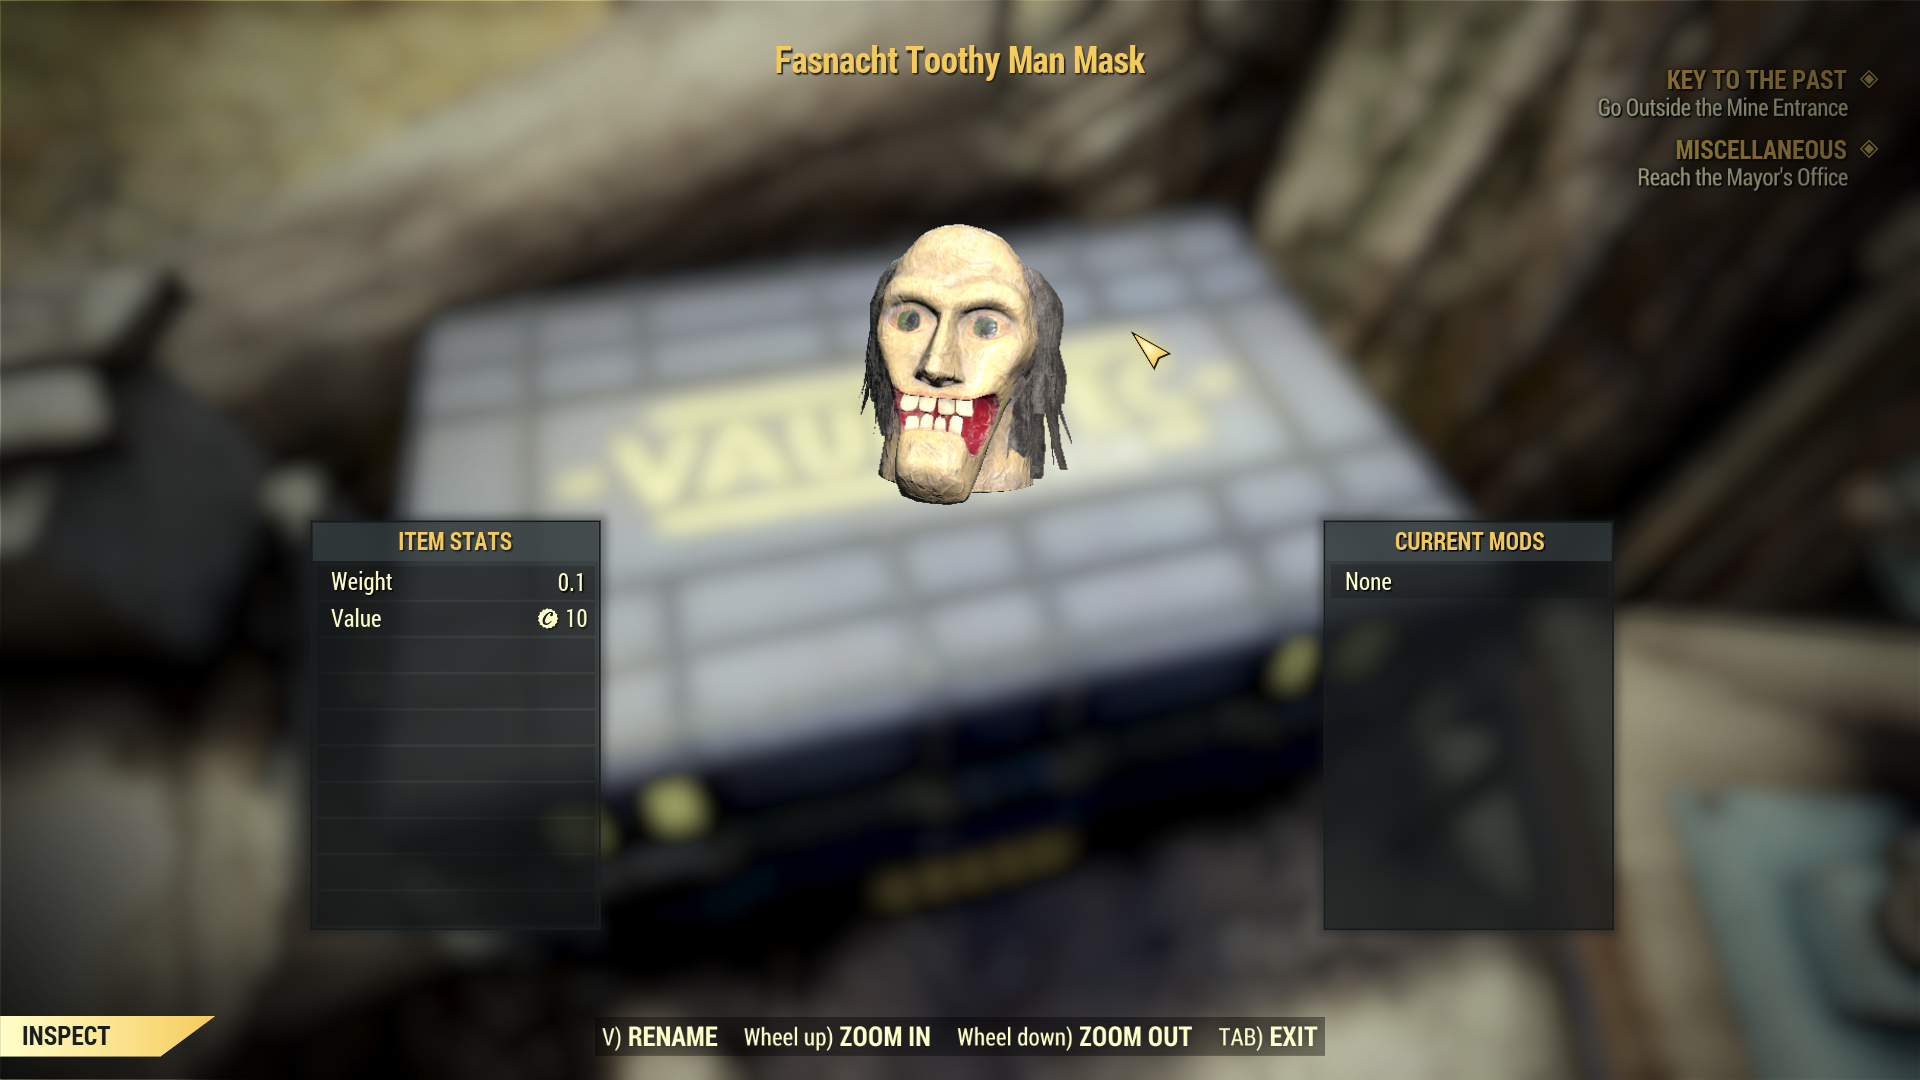 [Rare outfit] Fasnacht Toothy Man Mask